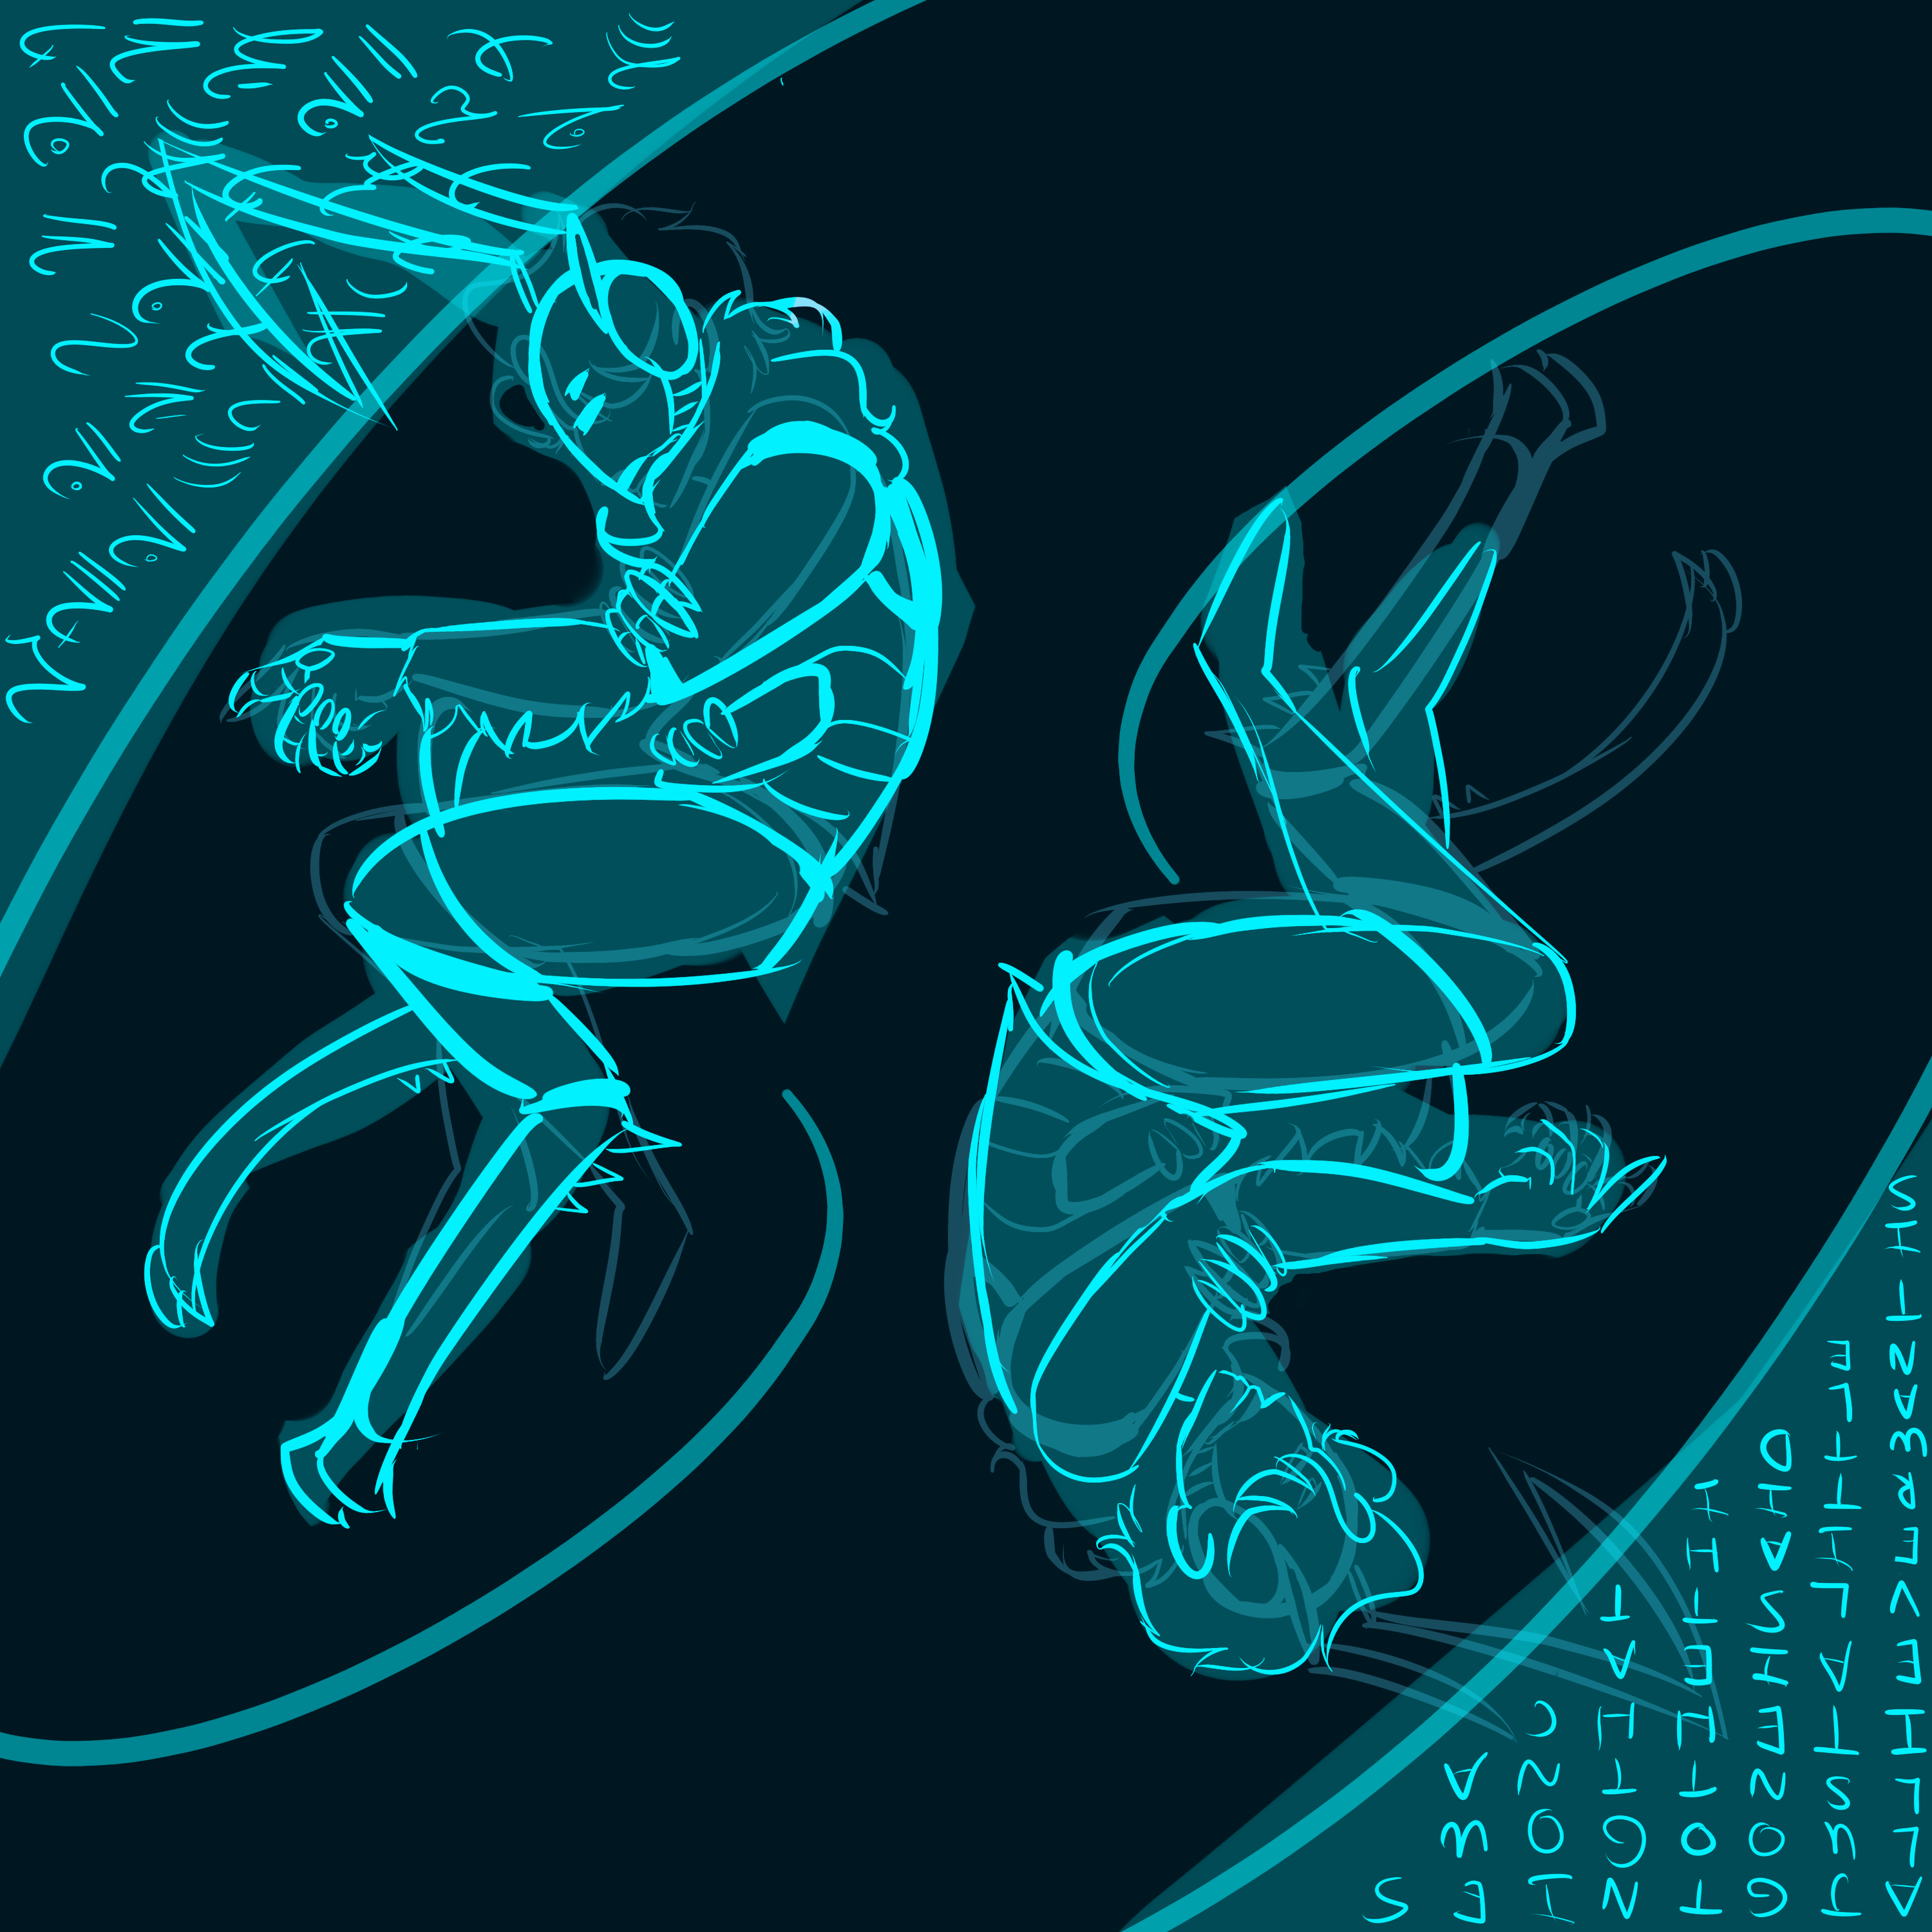 Digital artwork of two people, one human the other one alien. They are lined in bright cyan on a black background. One is upright, slightly hunched over, the other is the same but mirrored and upside down.